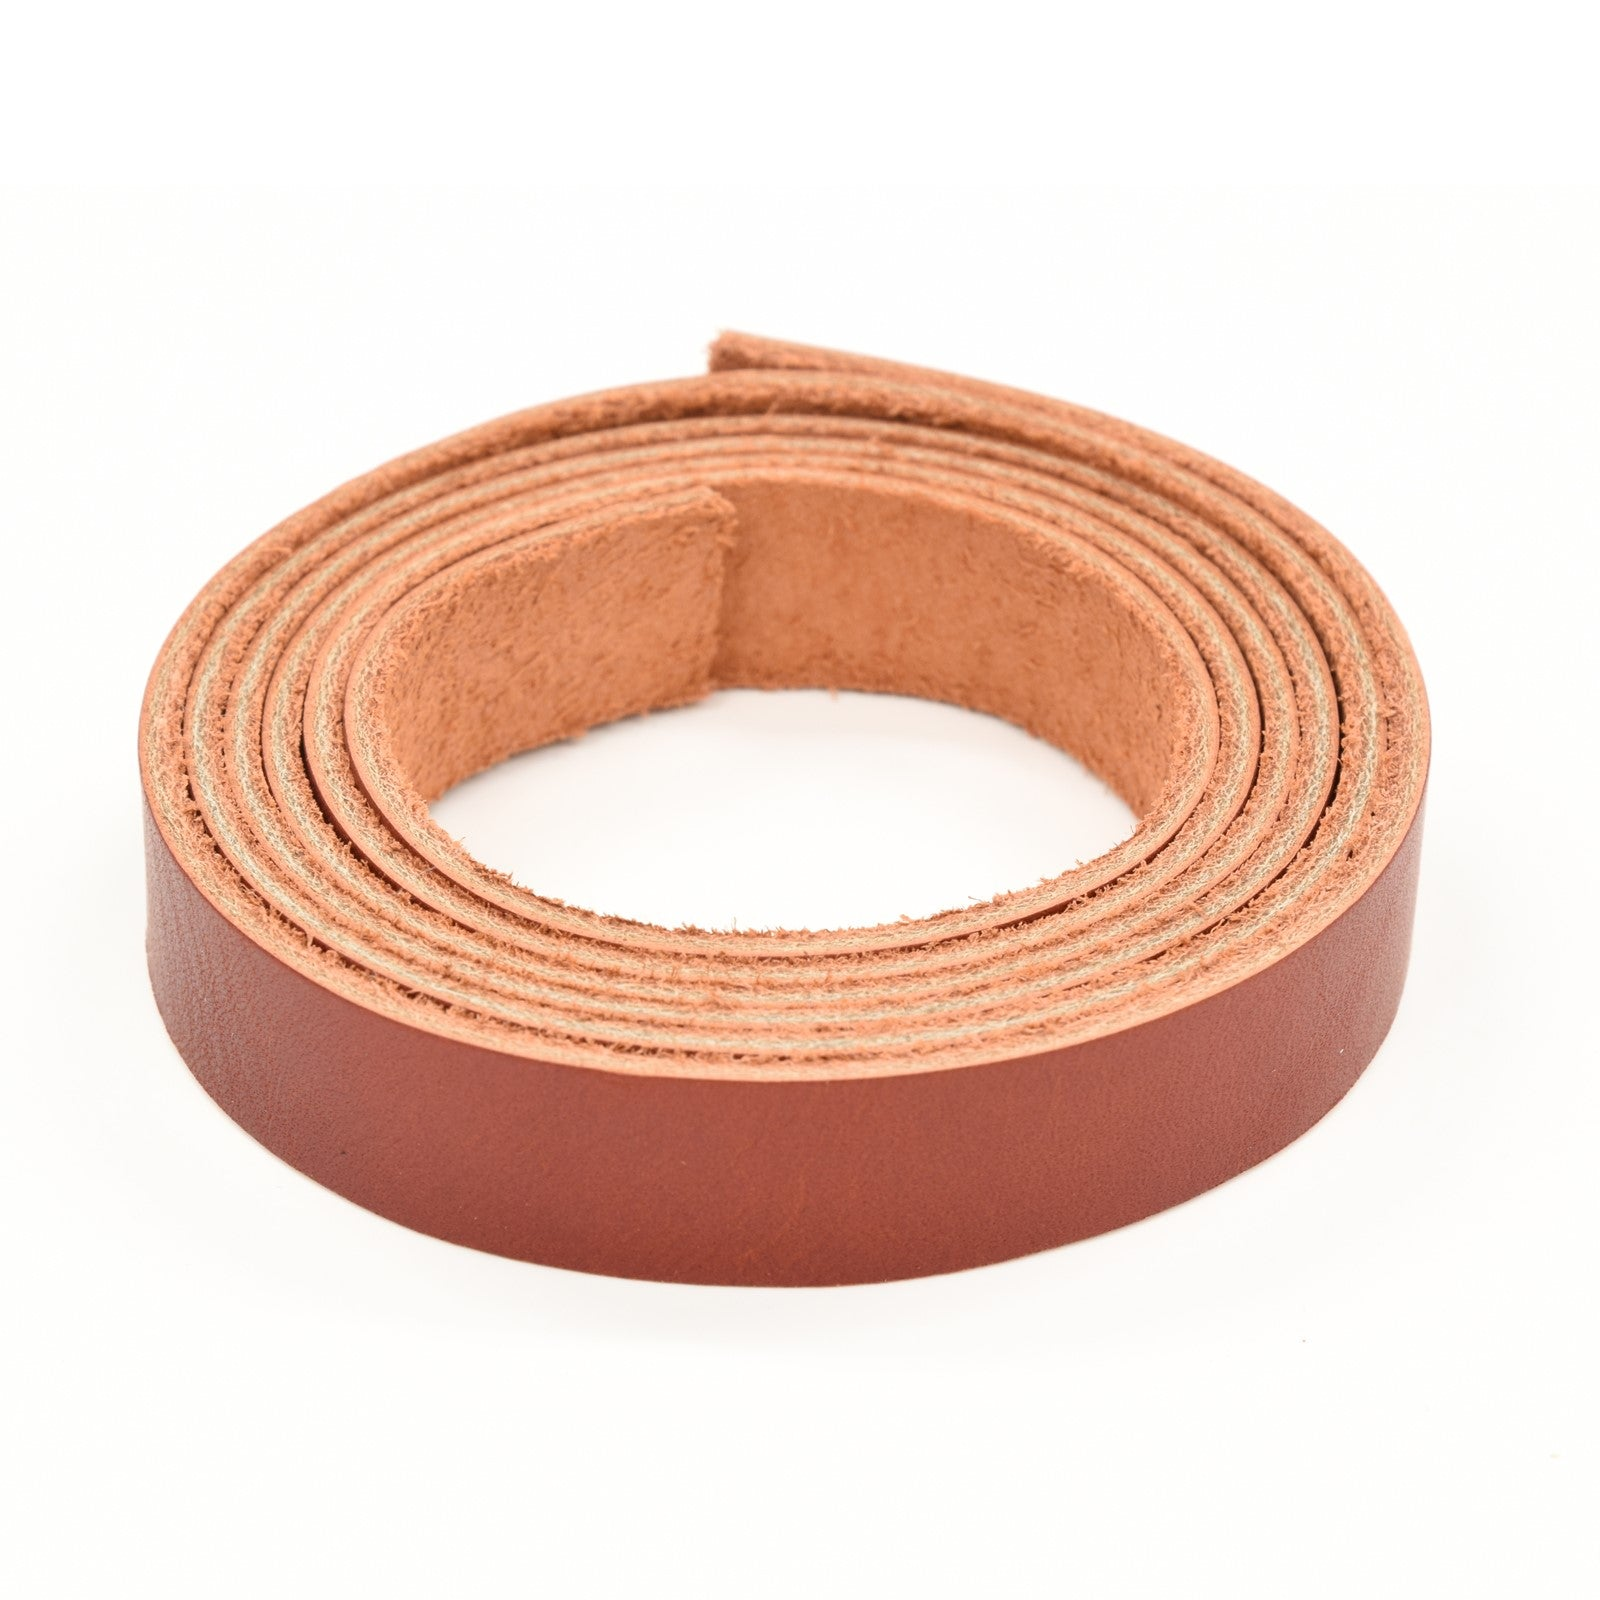 "Oil Tanned Leather 54"" Strap Various Colors and Widths 4-6 oz, Red / 3/4"